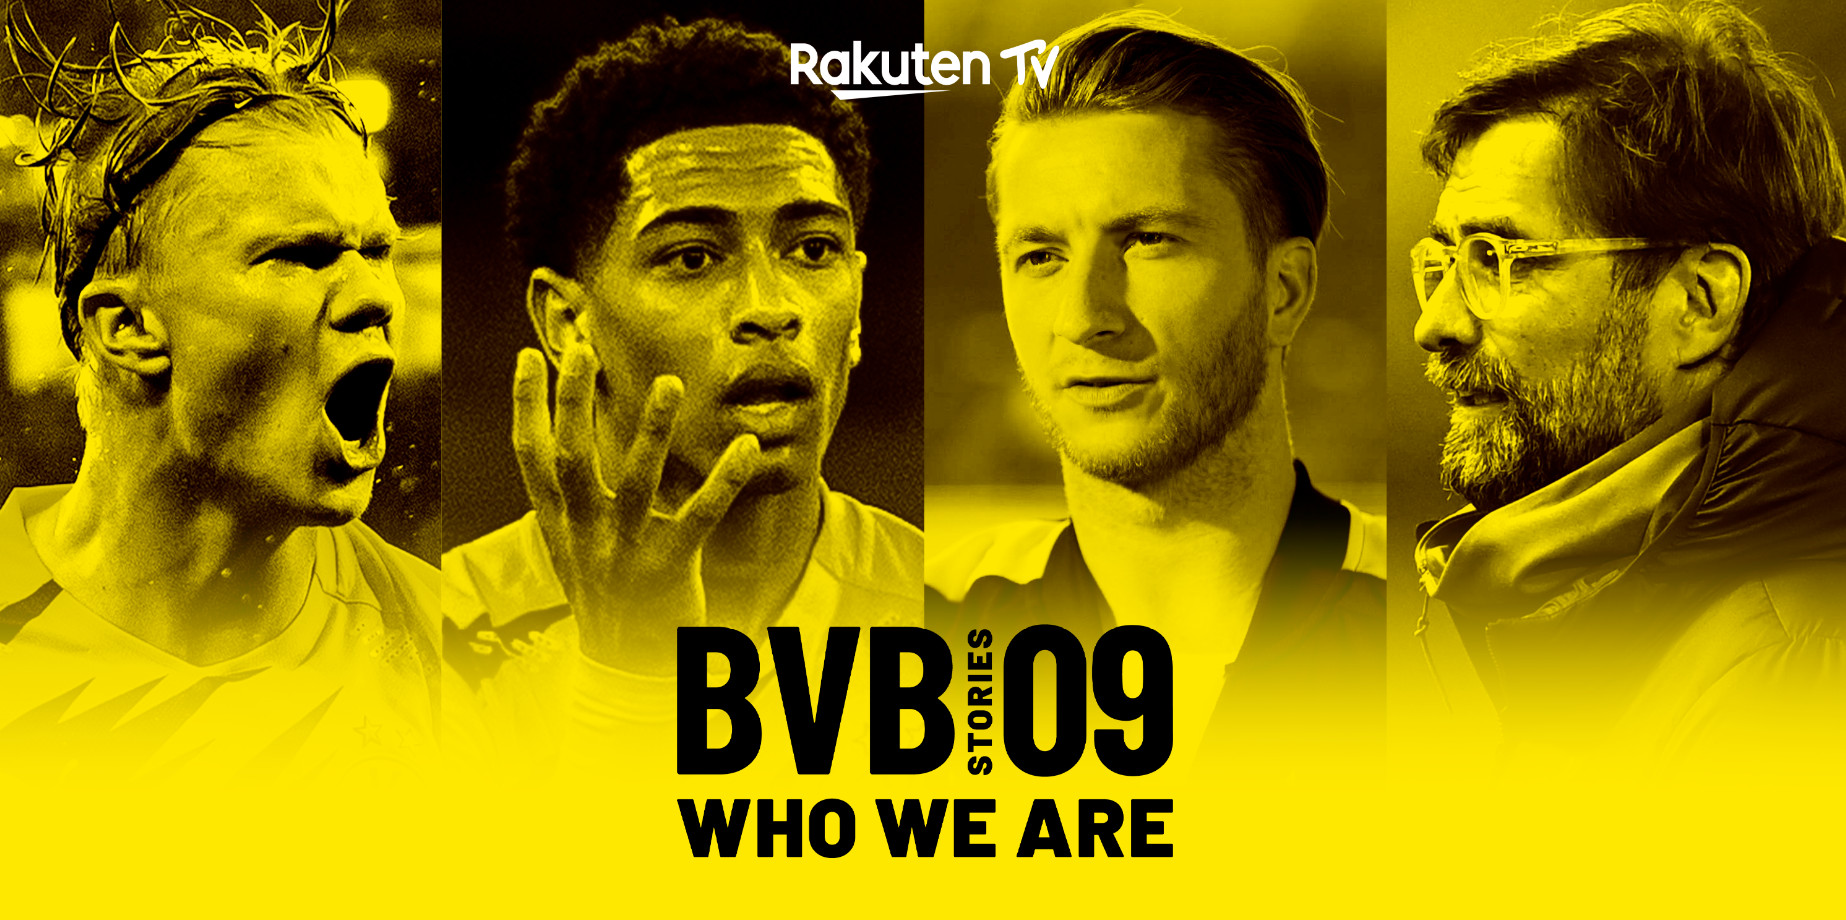 Bvb 09 stories who we are